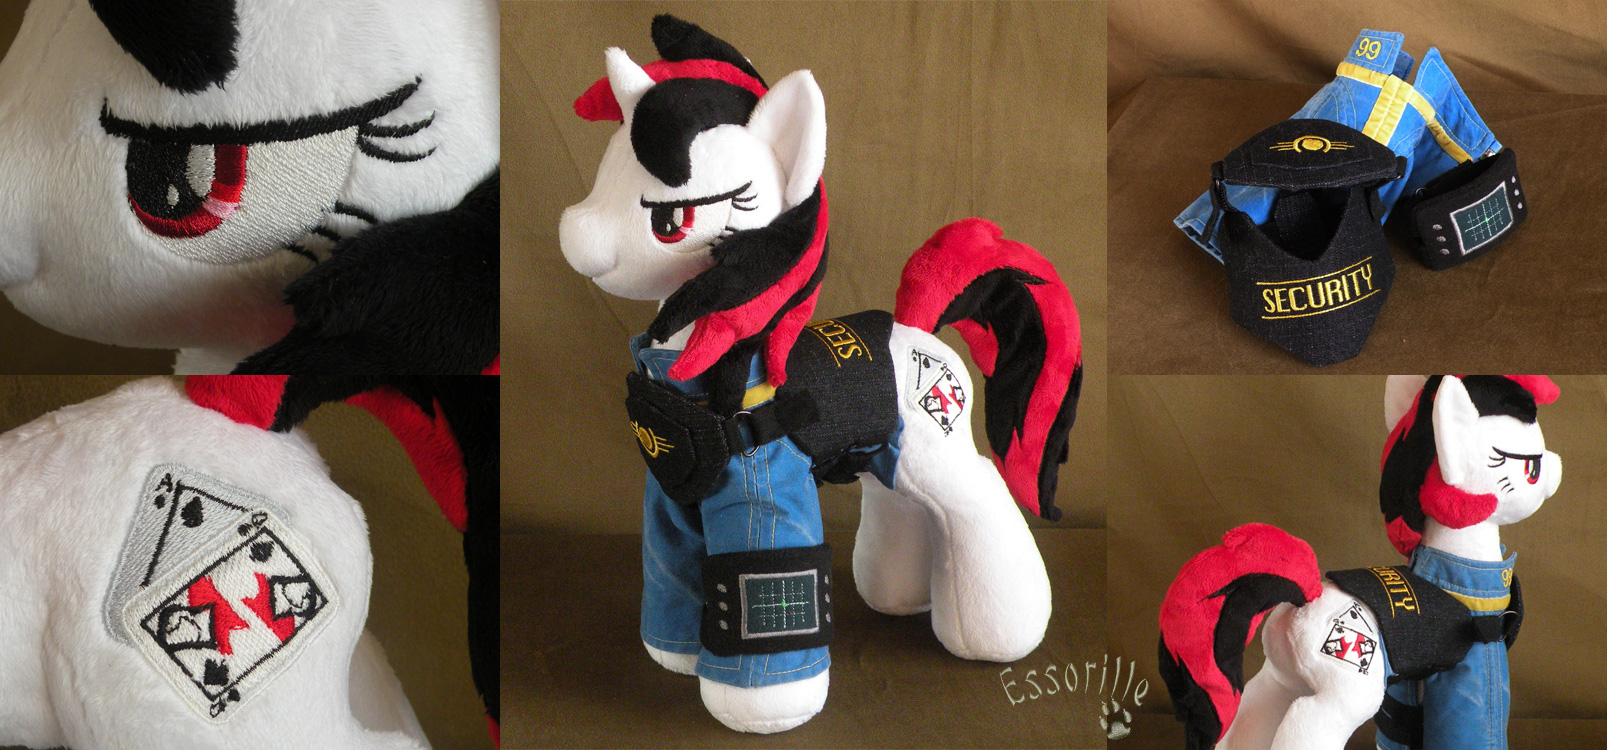 BlackJack - Details by Essorille